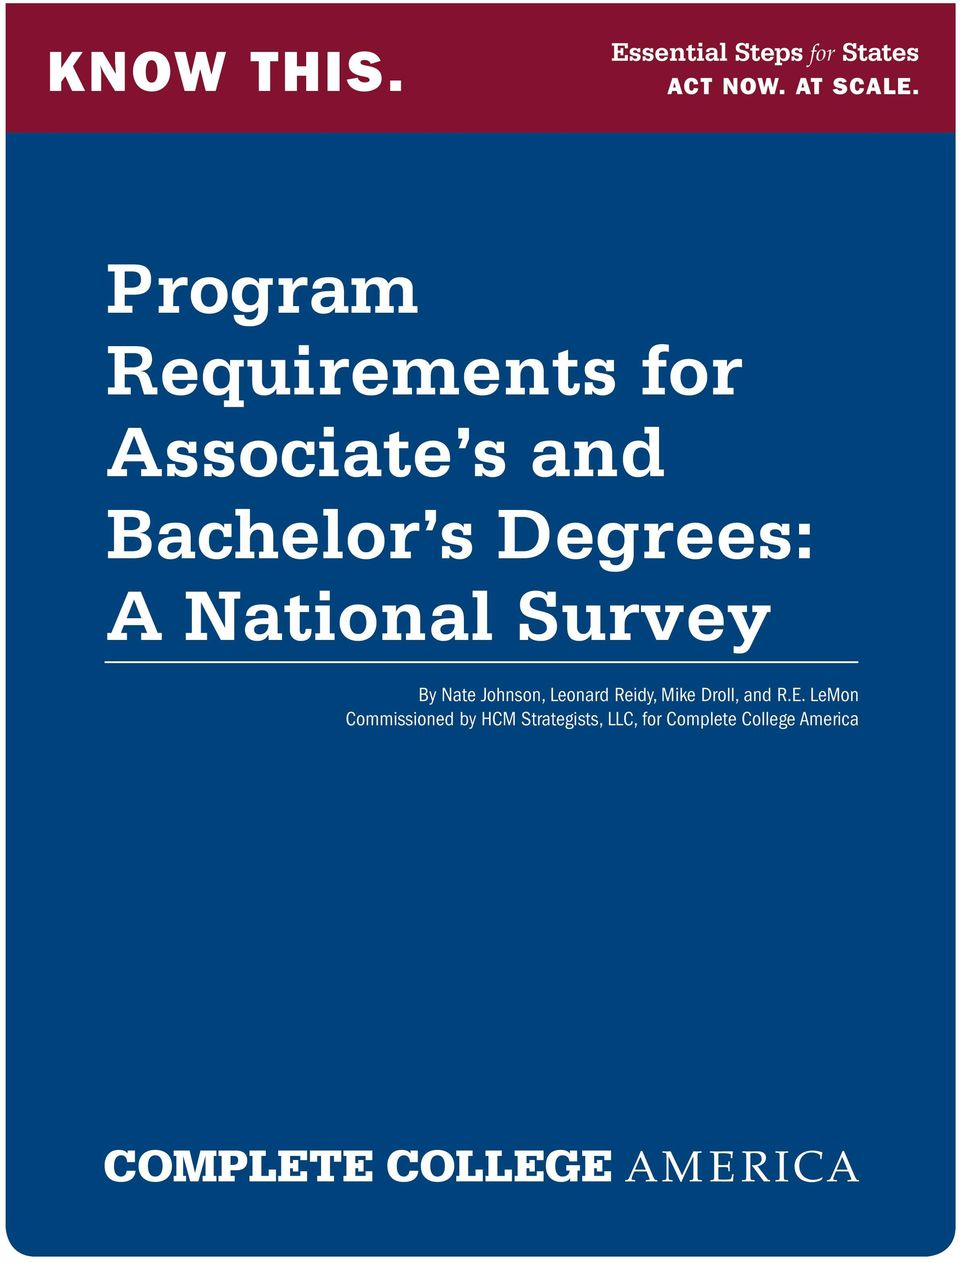 National Survey By Nate Johnson, Leonard Reidy, Mike Droll, and R.